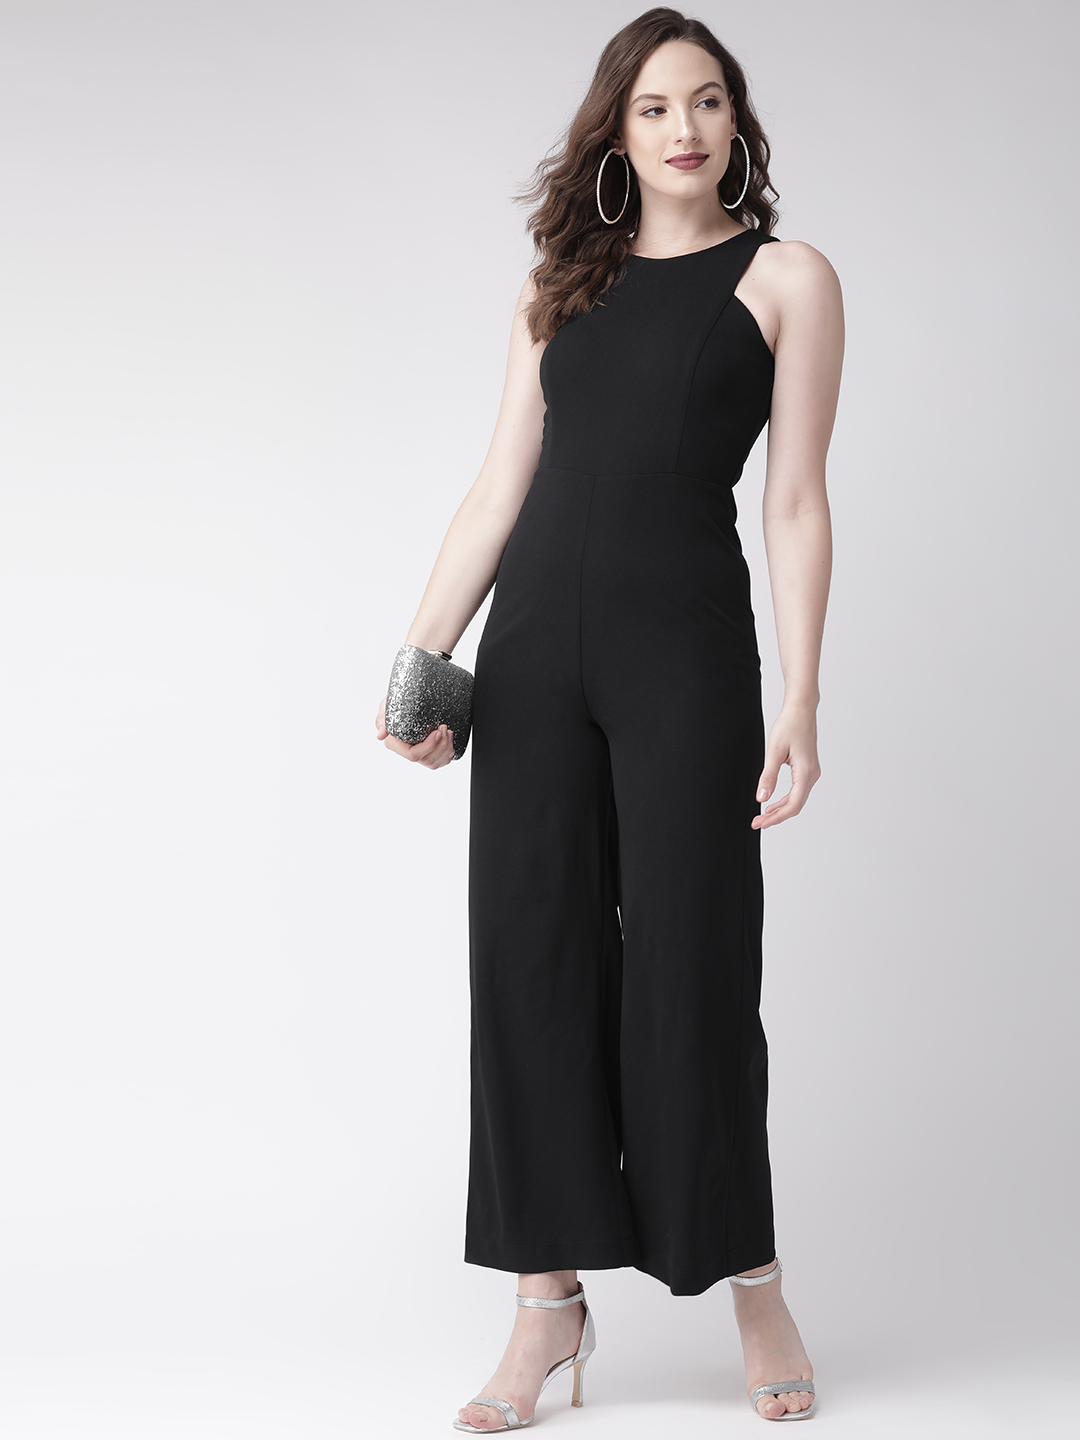 Jumpsuits-Welcome To The Party Jumpsuit6